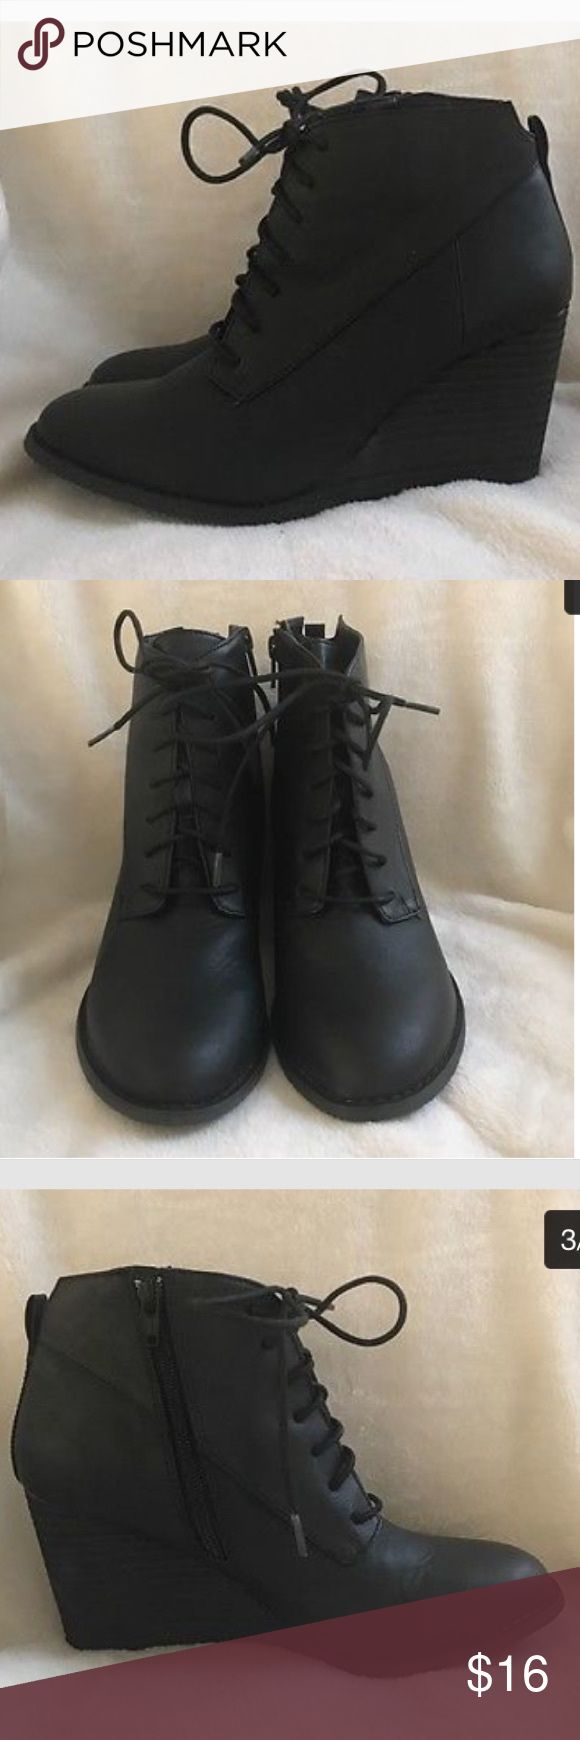 Diba Women's Black Wedge Ankle Boots Size 8M Great black ankle bootie. I maybe wore them once. True to size. Diba Shoes Ankle Boots & Booties